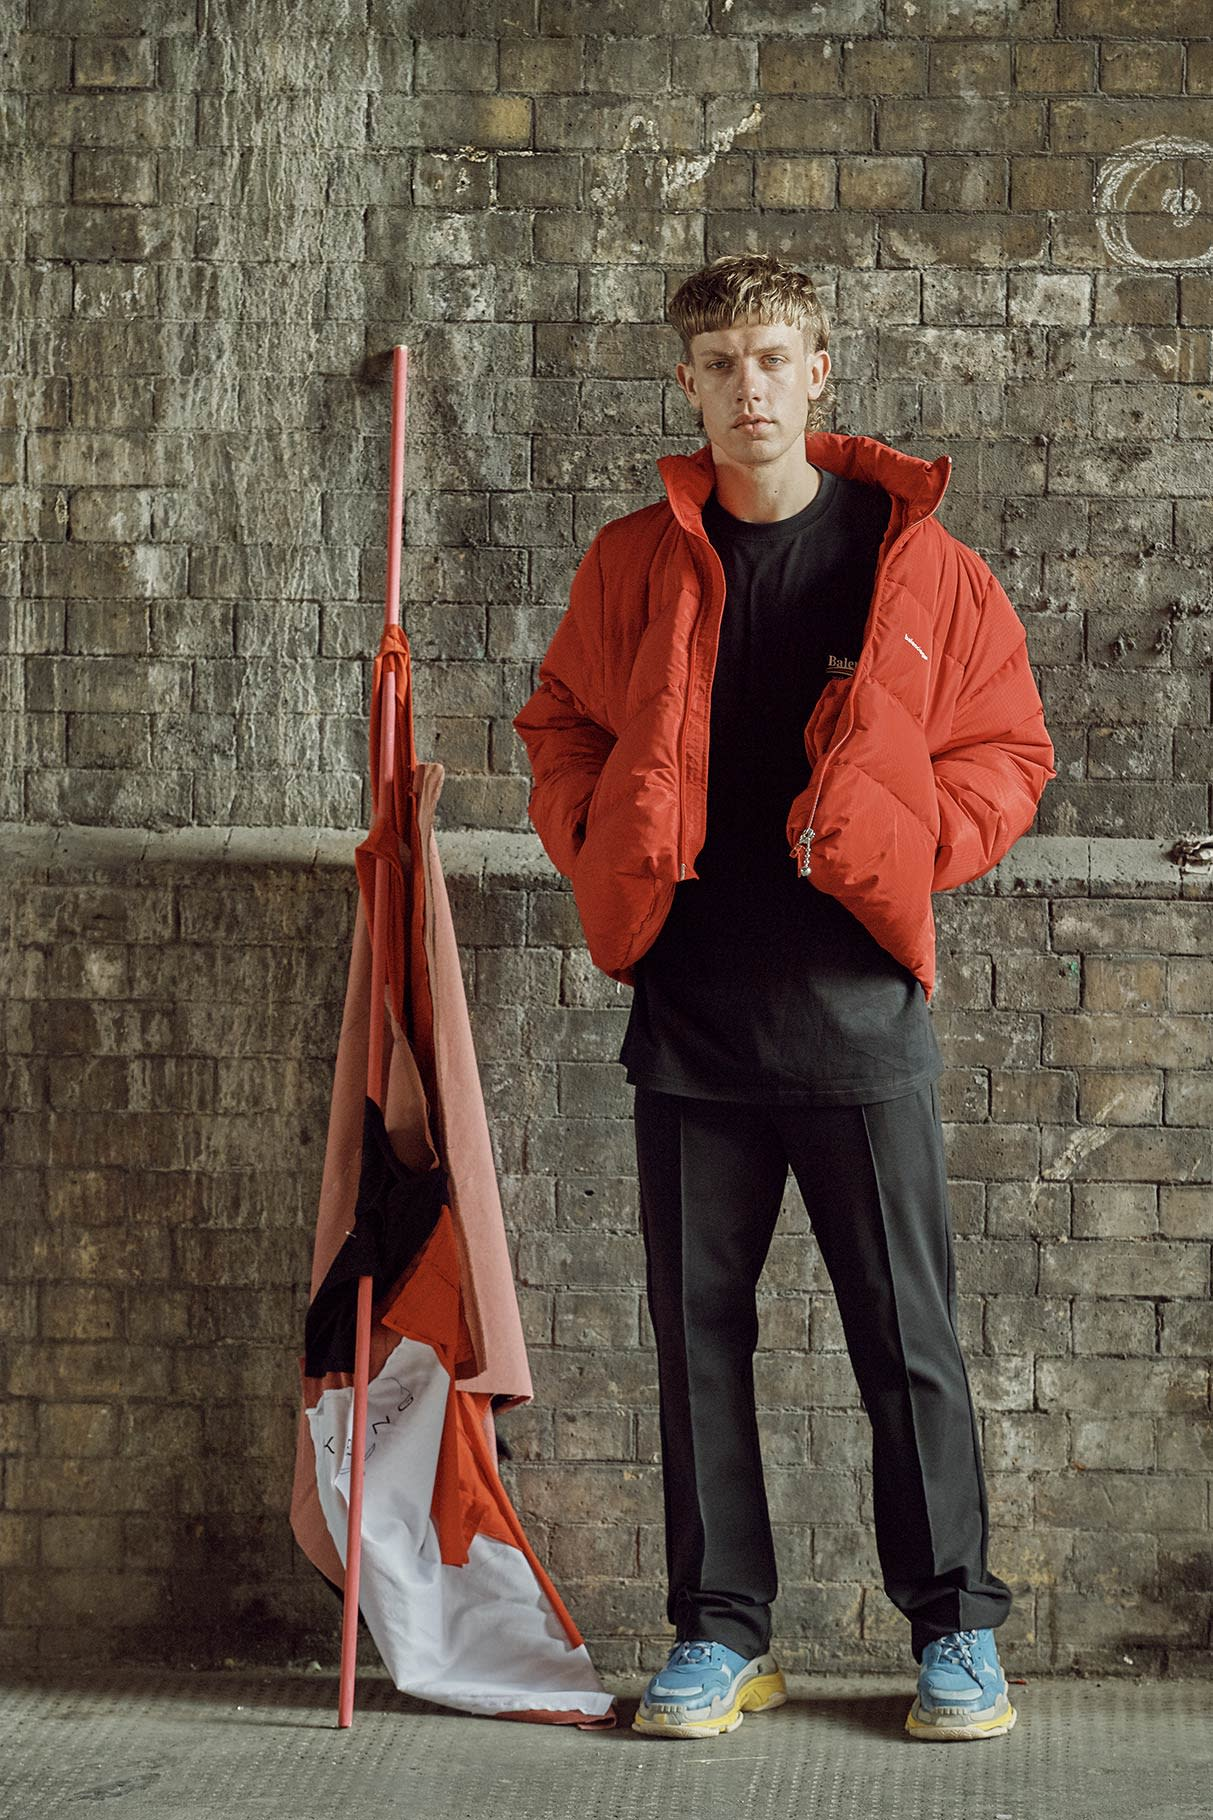 https://res.cloudinary.com/ssenseweb/image/upload/dpr_auto/v1500918845/editorial/editorial/FW17/Balenciaga_02.jpg